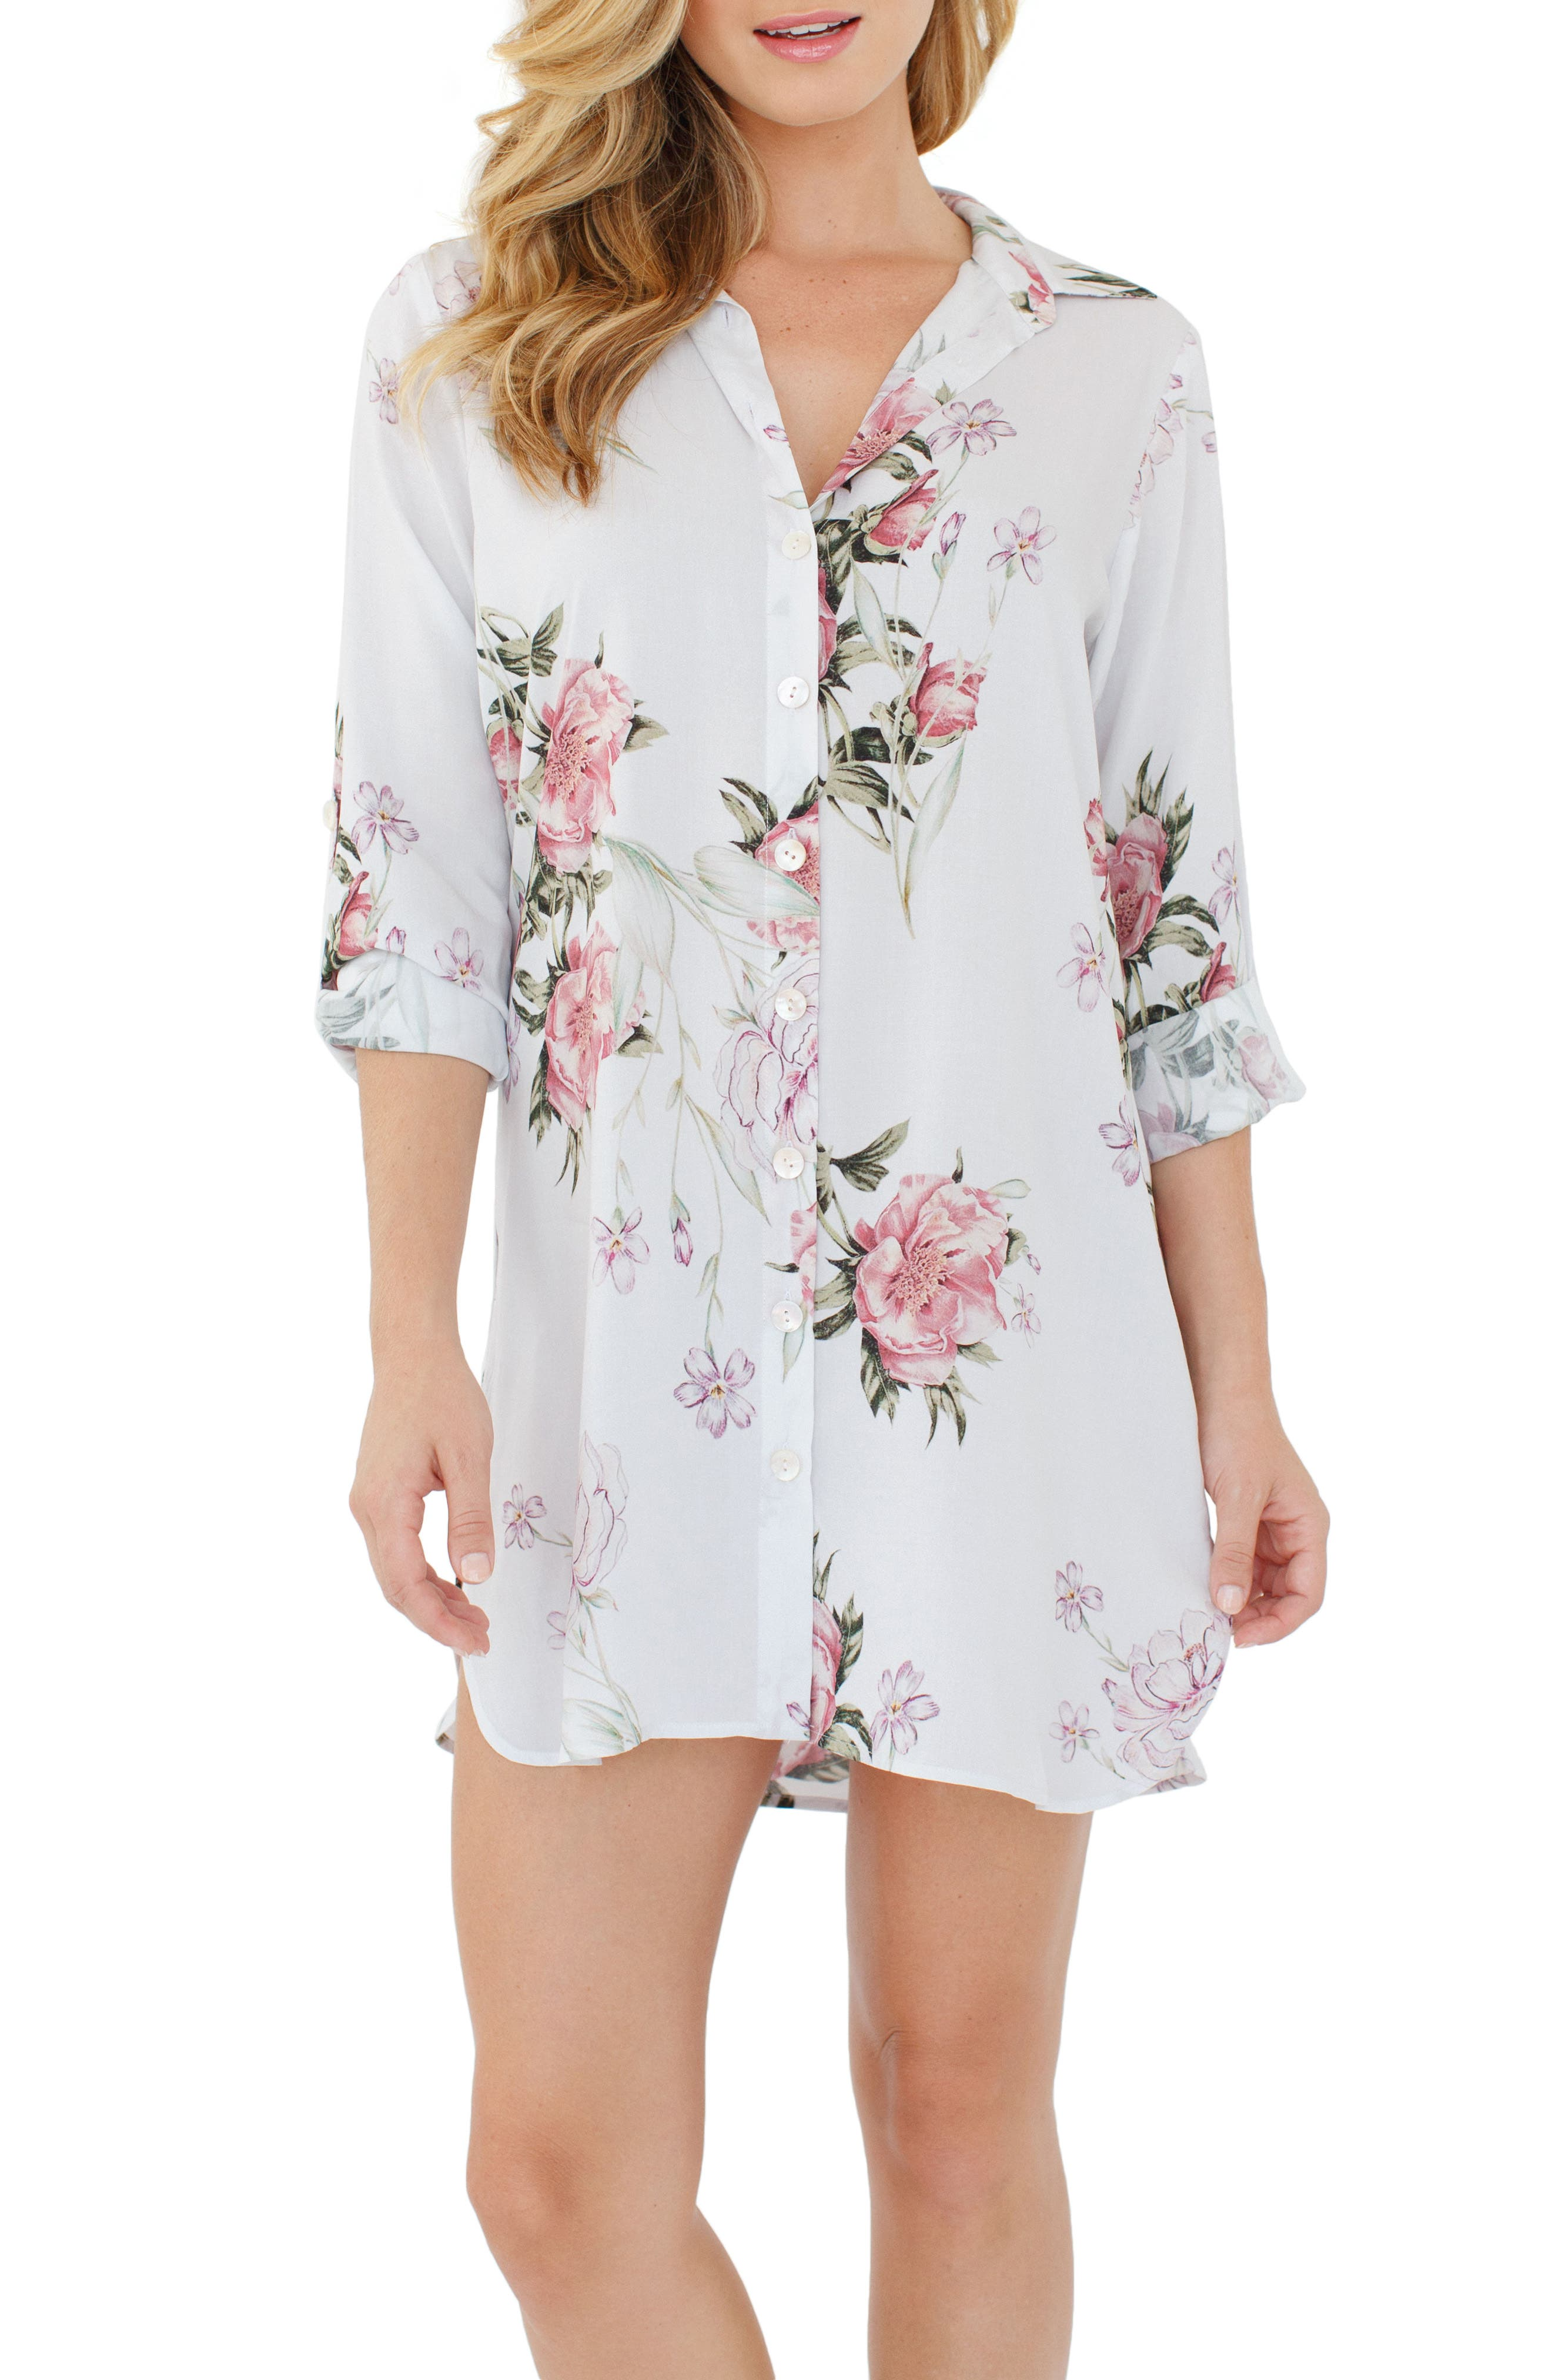 Main Image - Plum Pretty Sugar Floral Nightshirt